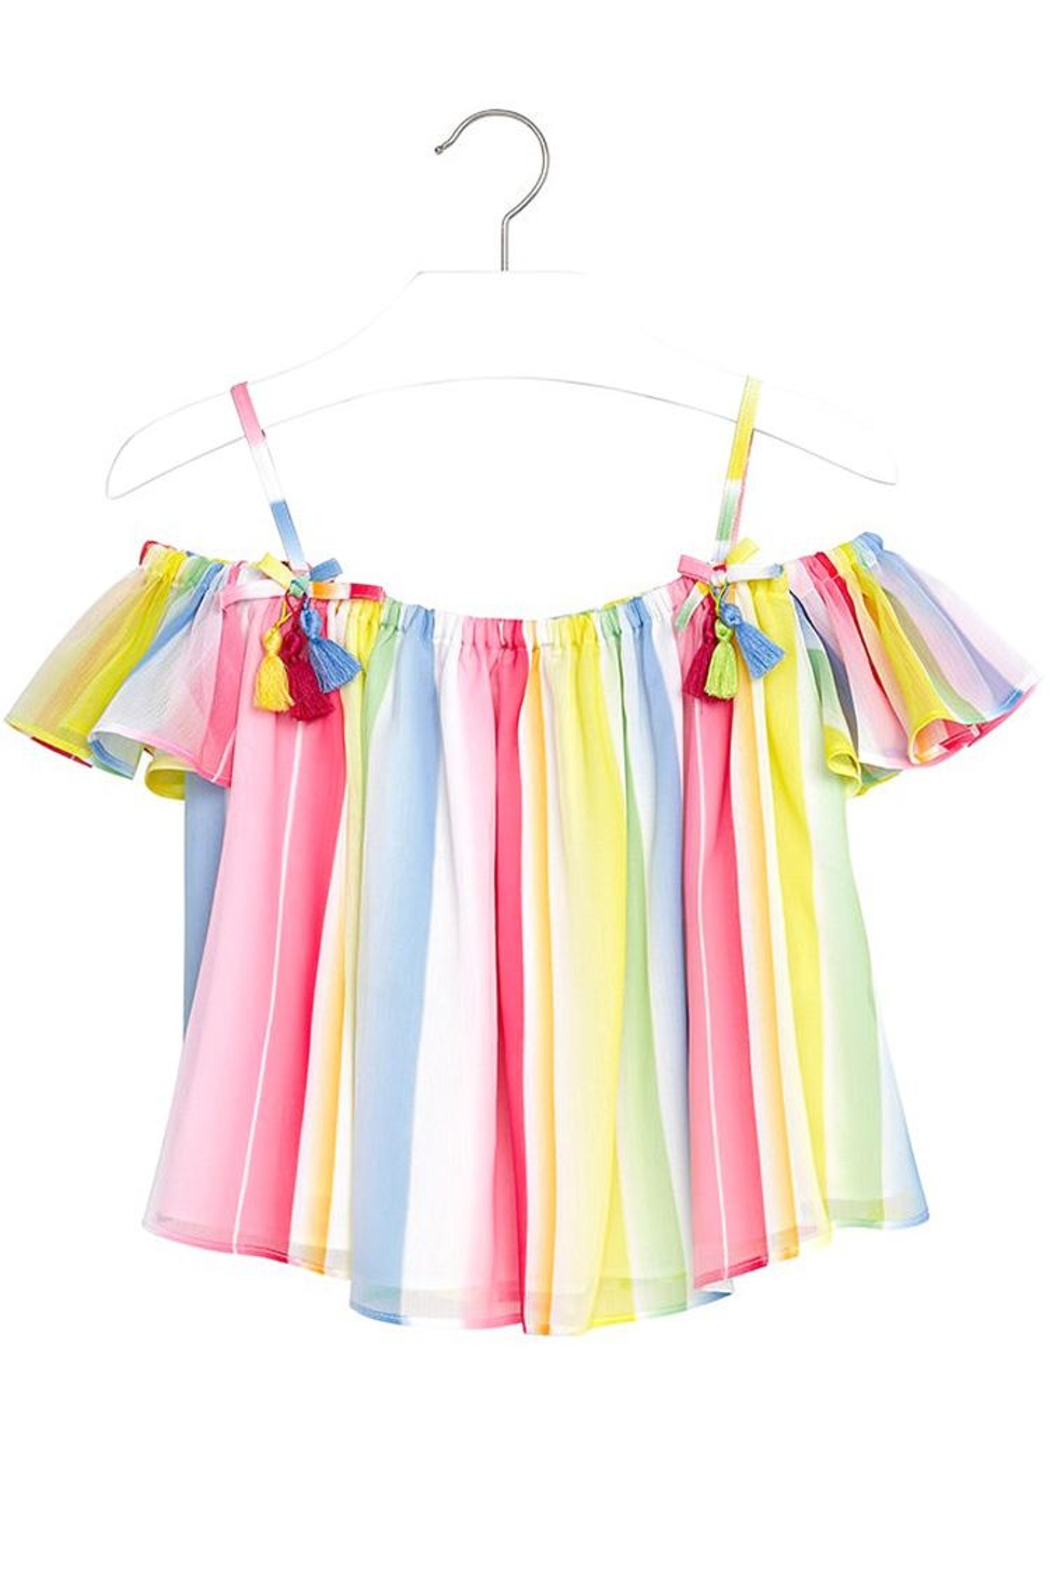 Mayoral Candy-Stripe Chiffon Blouse - Front Full Image